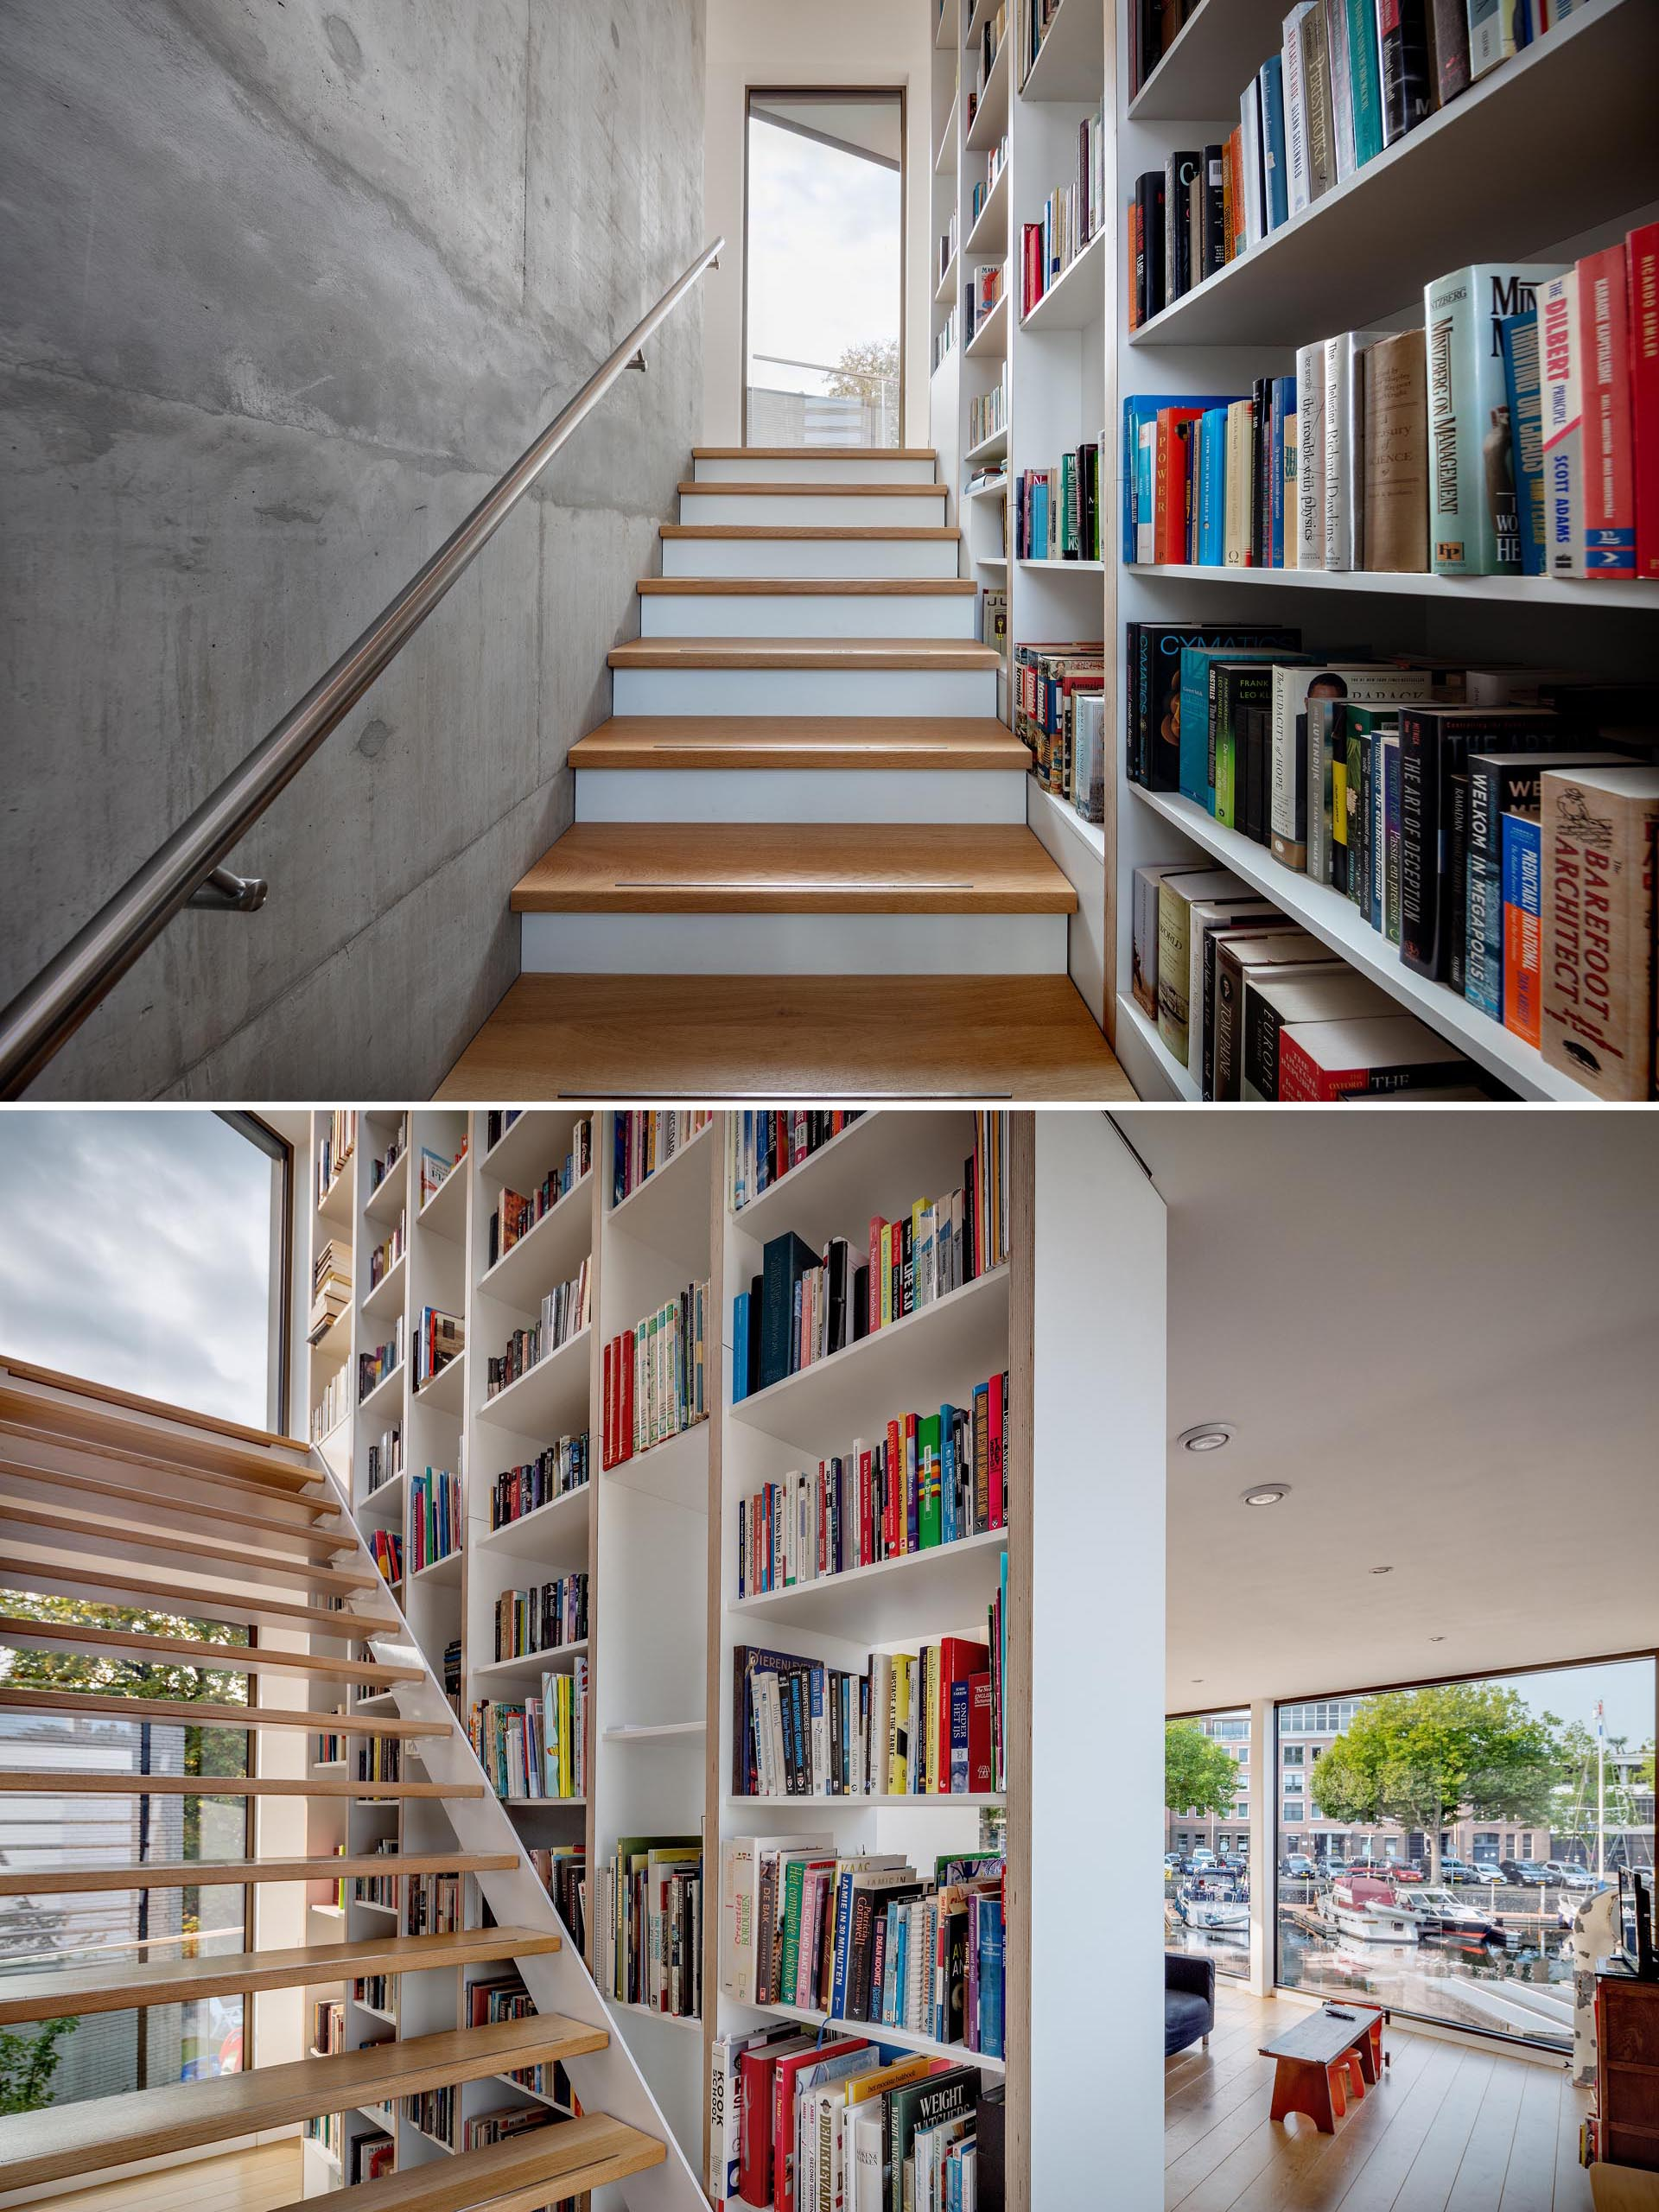 A tall bookshelf lines a staircase.